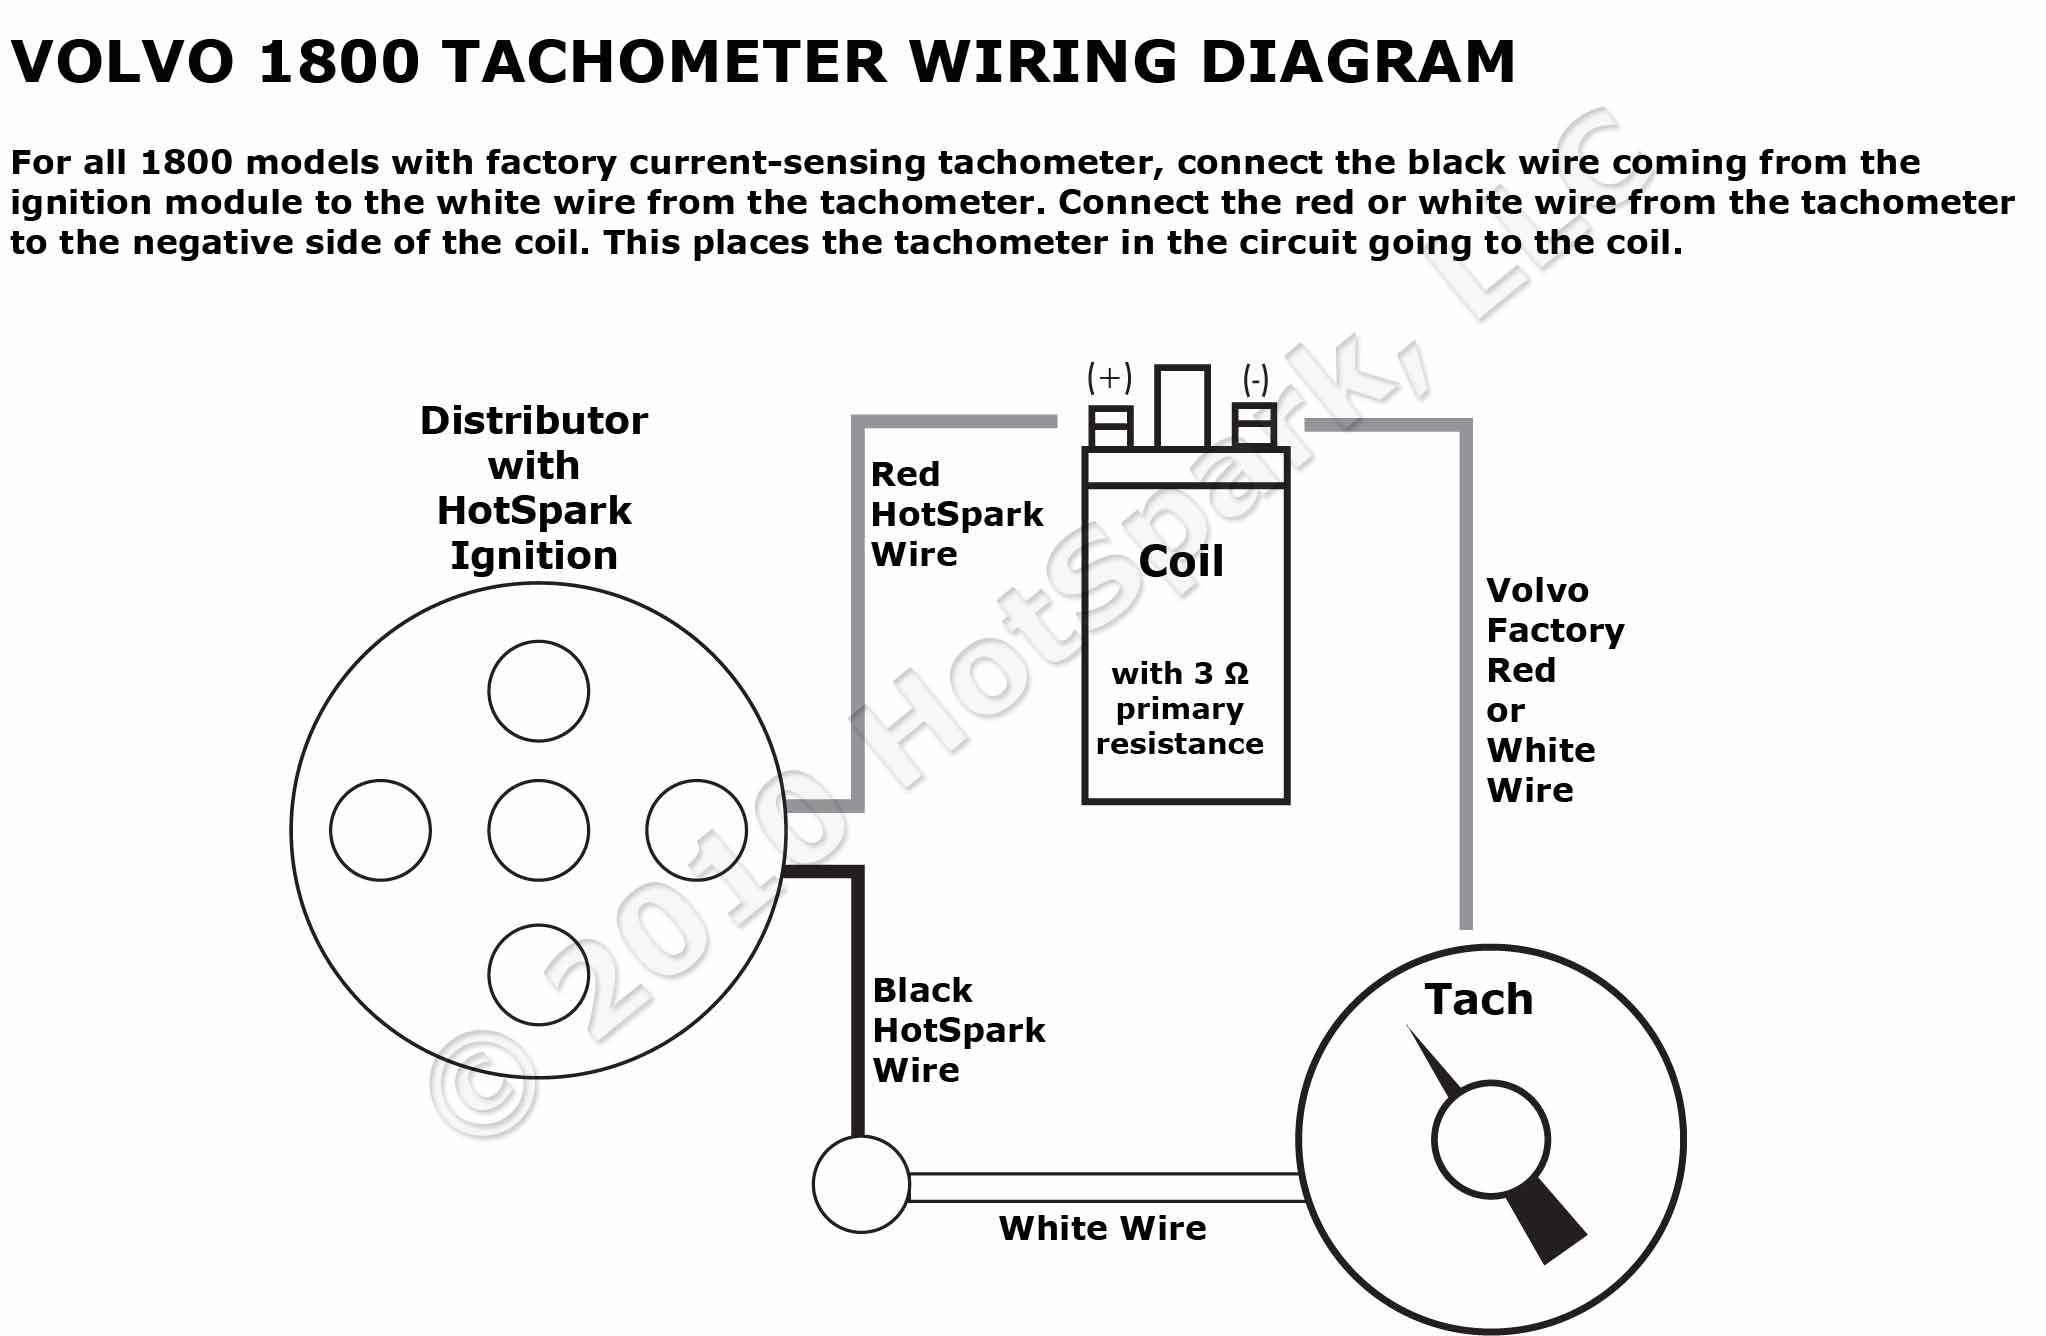 Volvo 1800 Tachometer and Hot Spark Wiring Diagram datcon tachometer wiring diagram datcon tachometer installation Tachometer Wiring Schematic at readyjetset.co